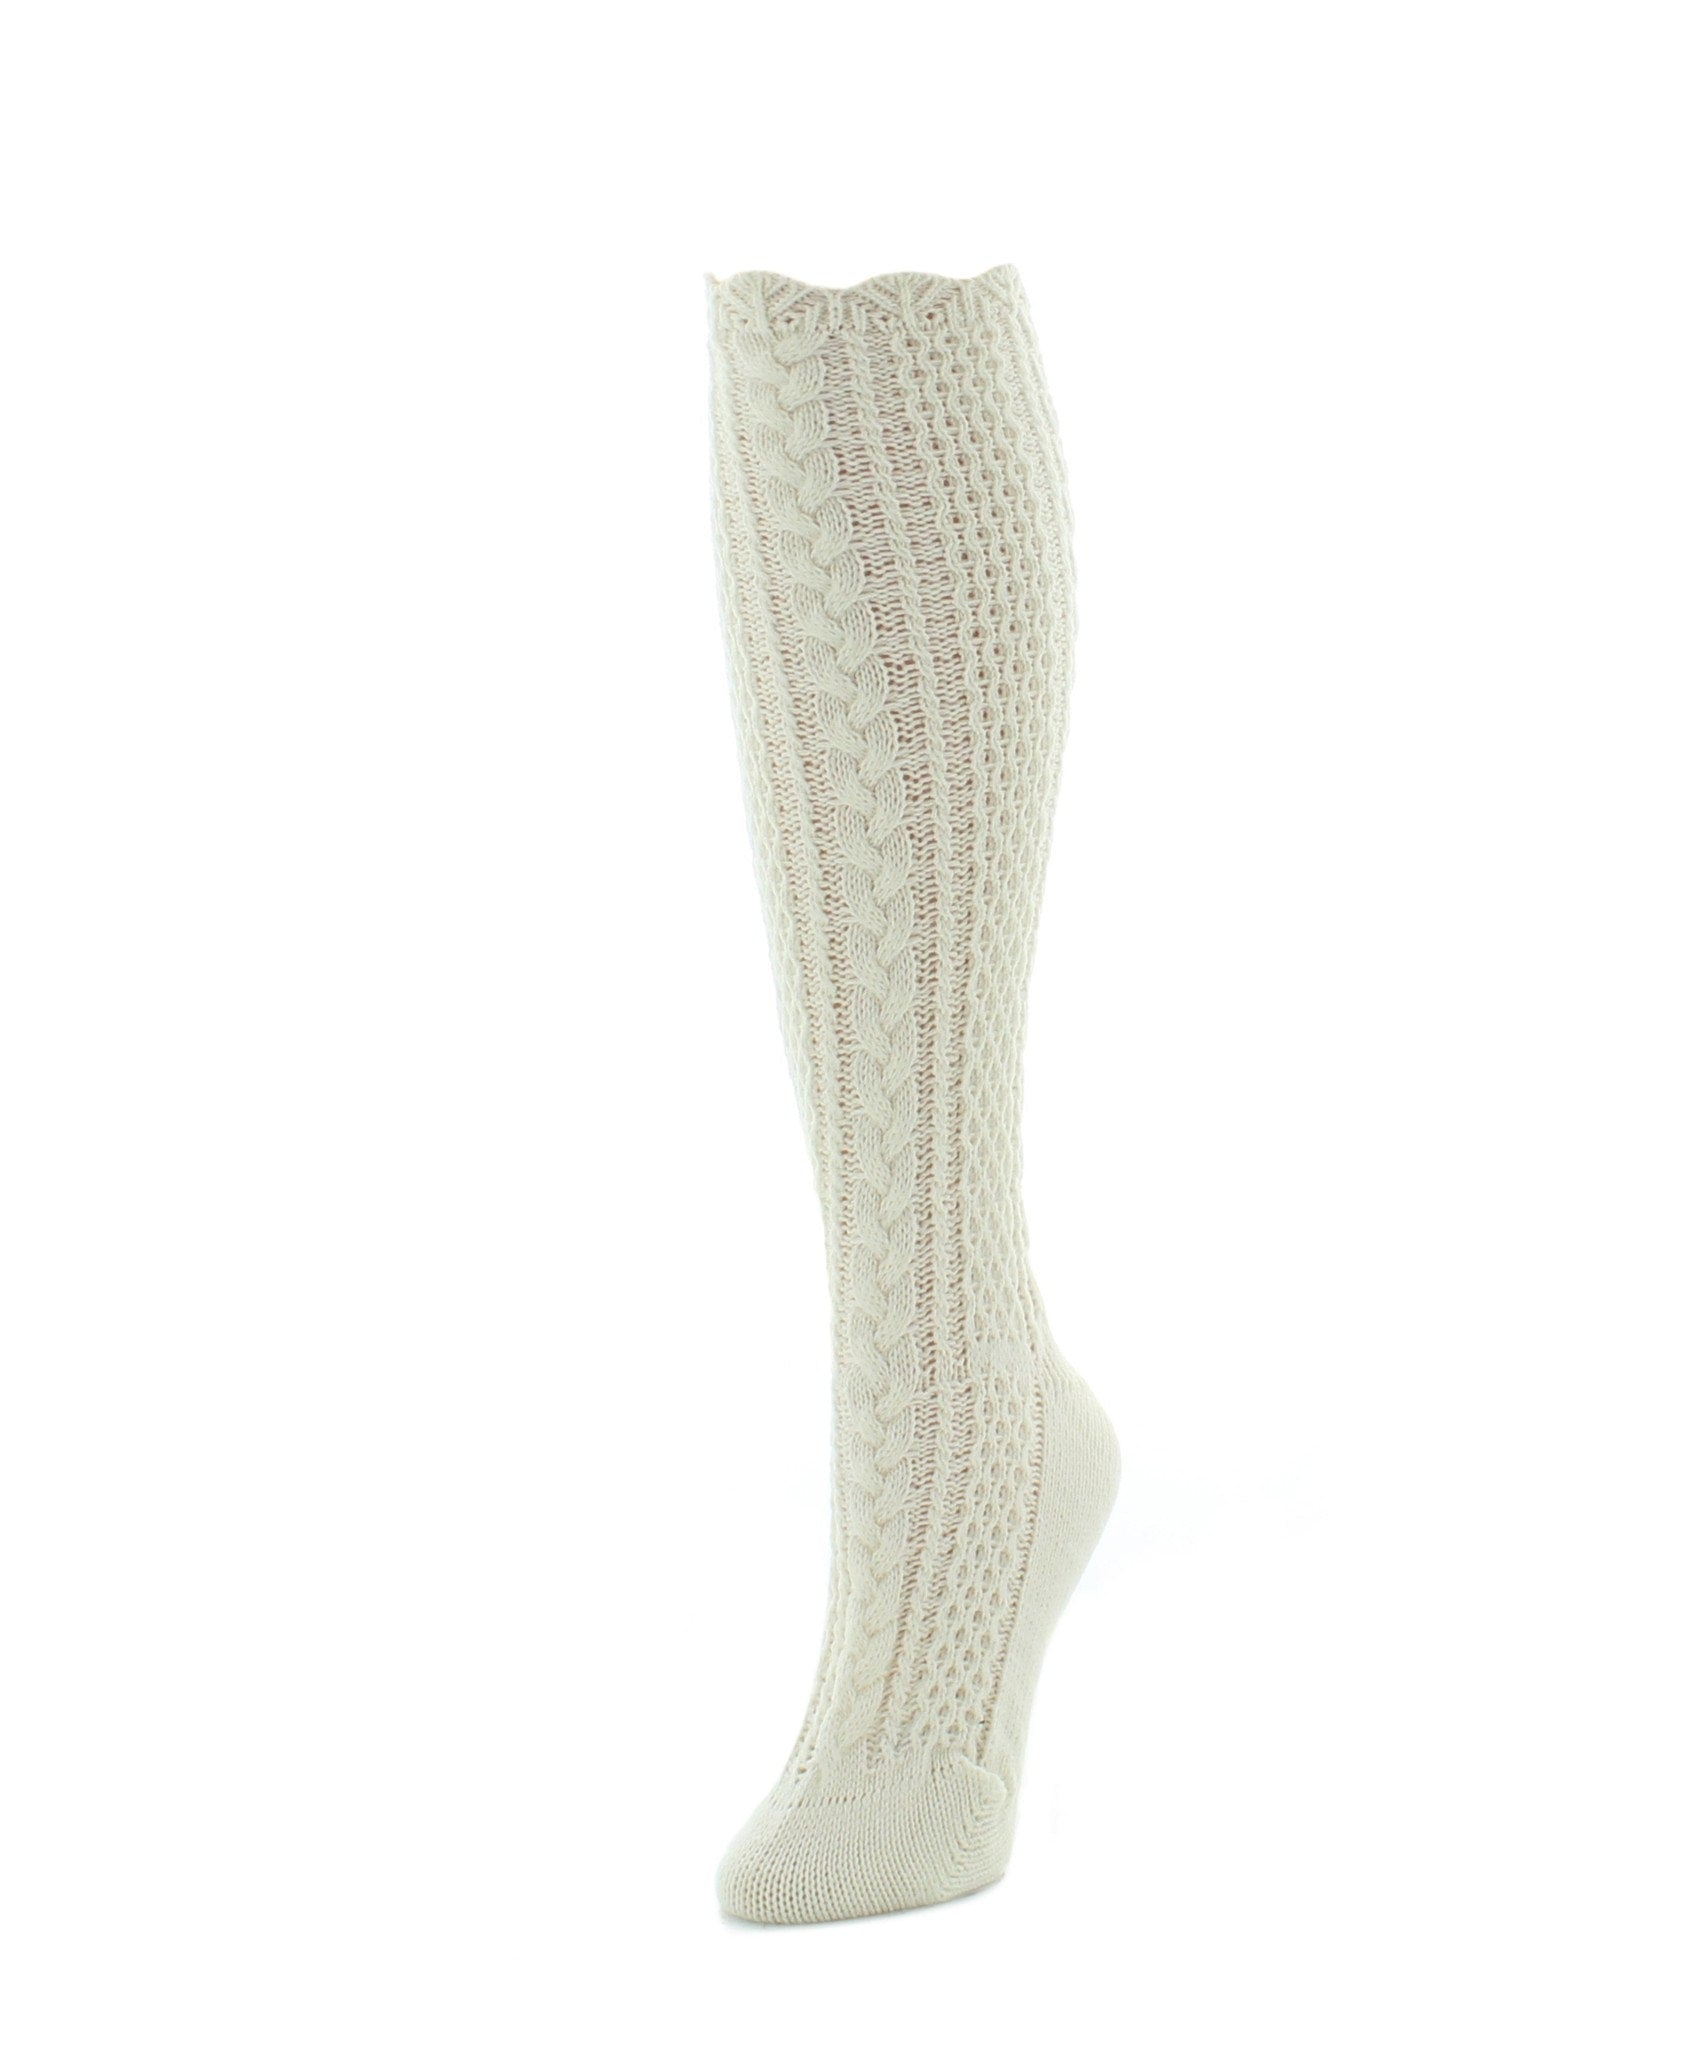 Pointelle Braid Chunky Knit Knee-High Socks - MeMoi - 3